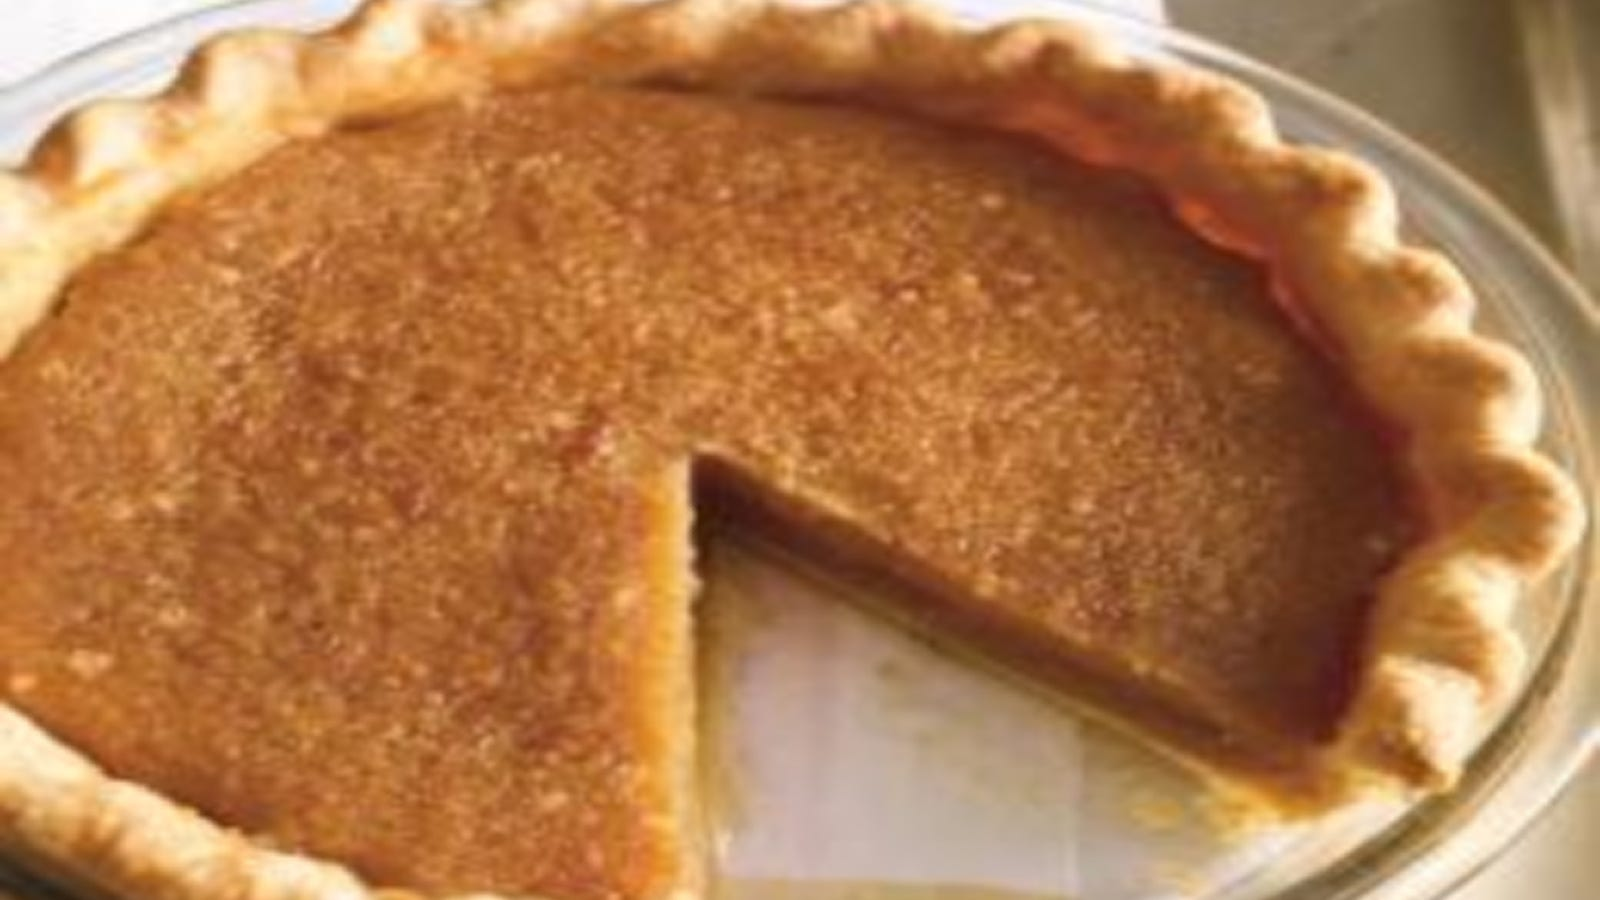 A warm maple syrup pie in a beautifully fluted pie crust, with one slice missing.